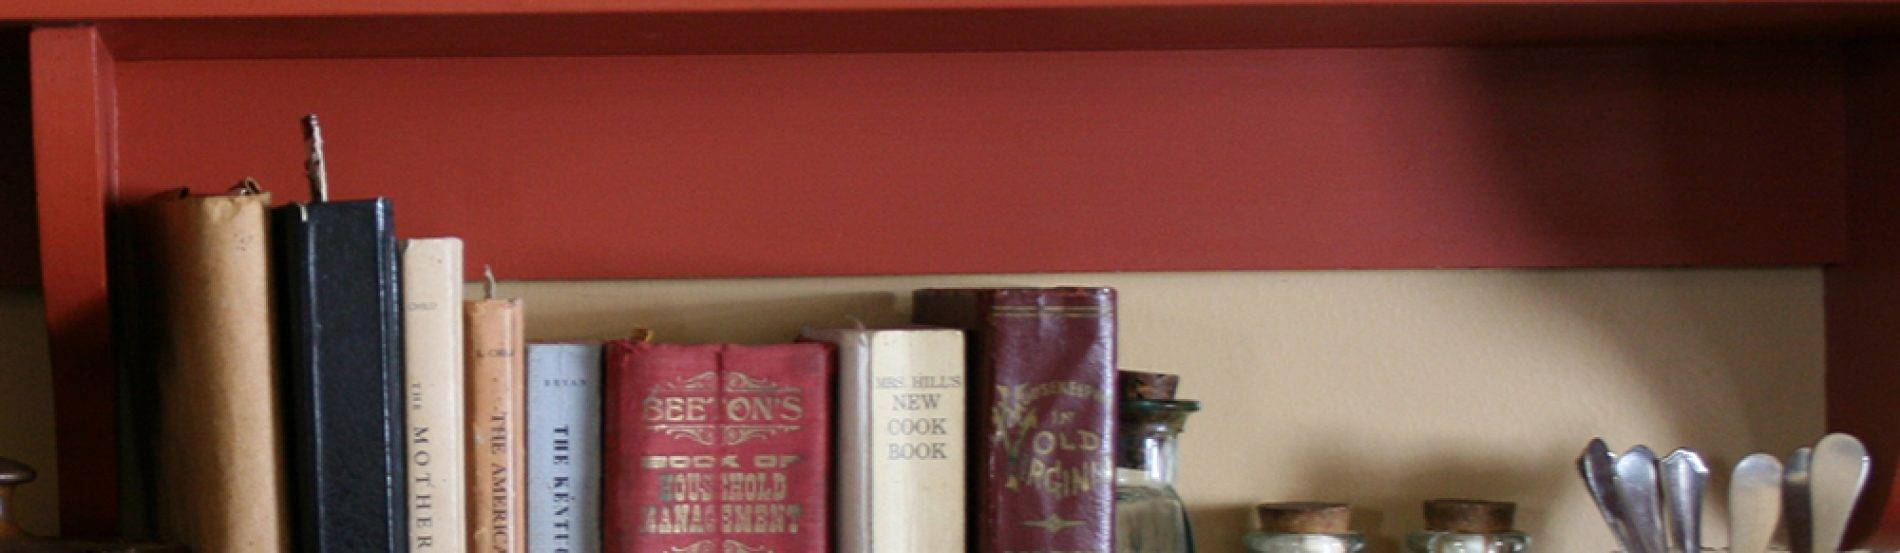 cookbooks and ingredients on kitchen shelf